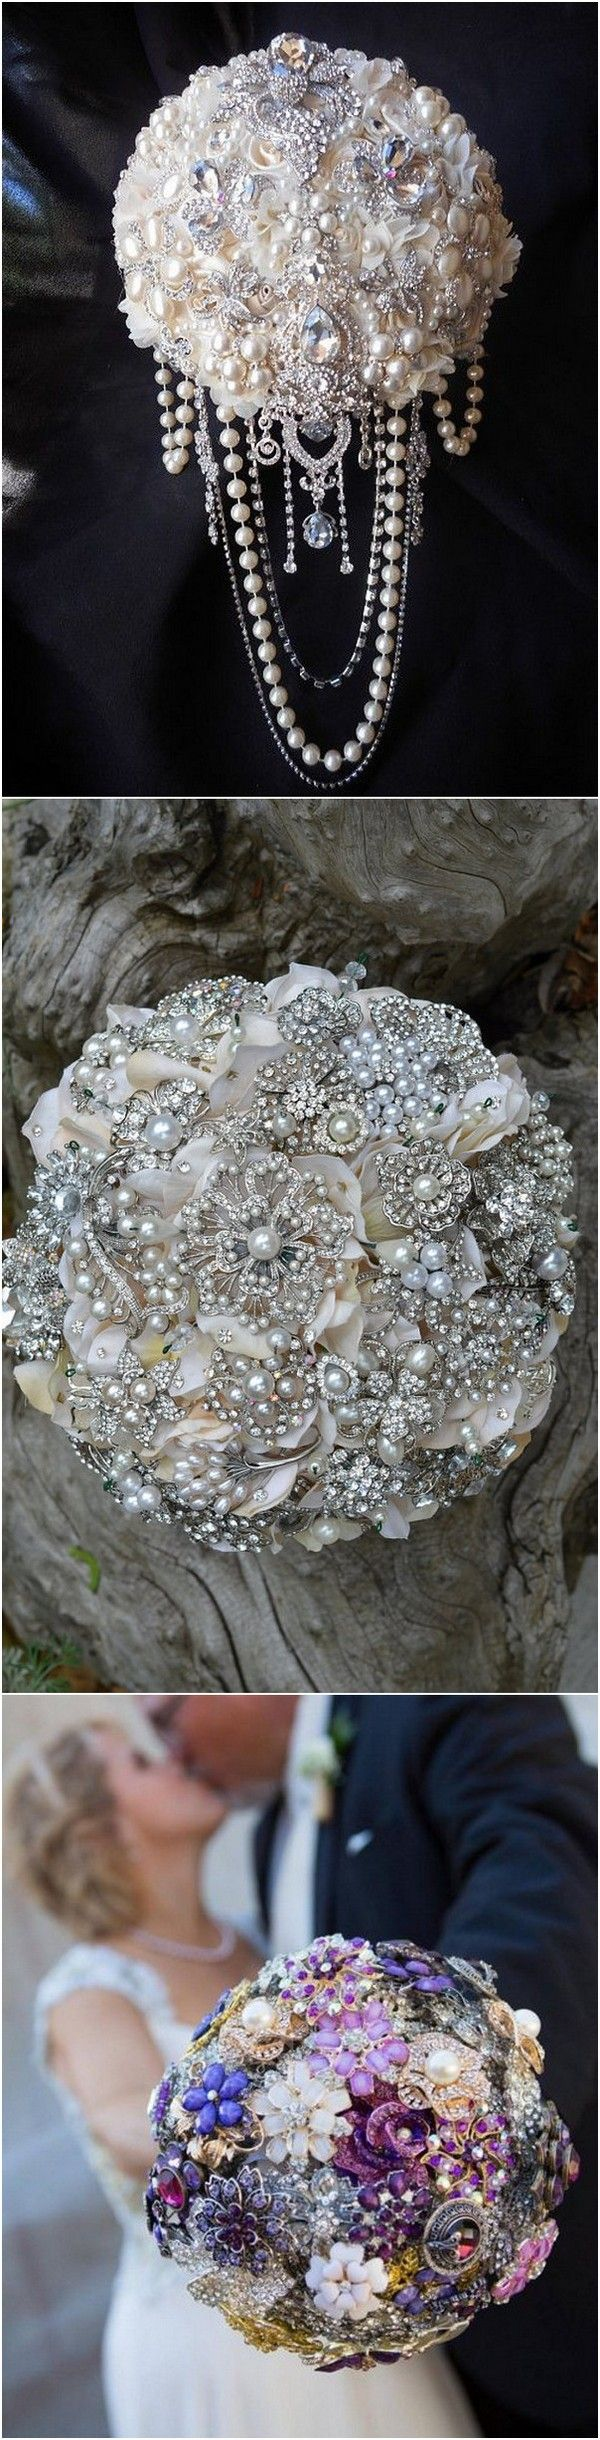 Vintage wedding brooch bouquet ideas for 2018